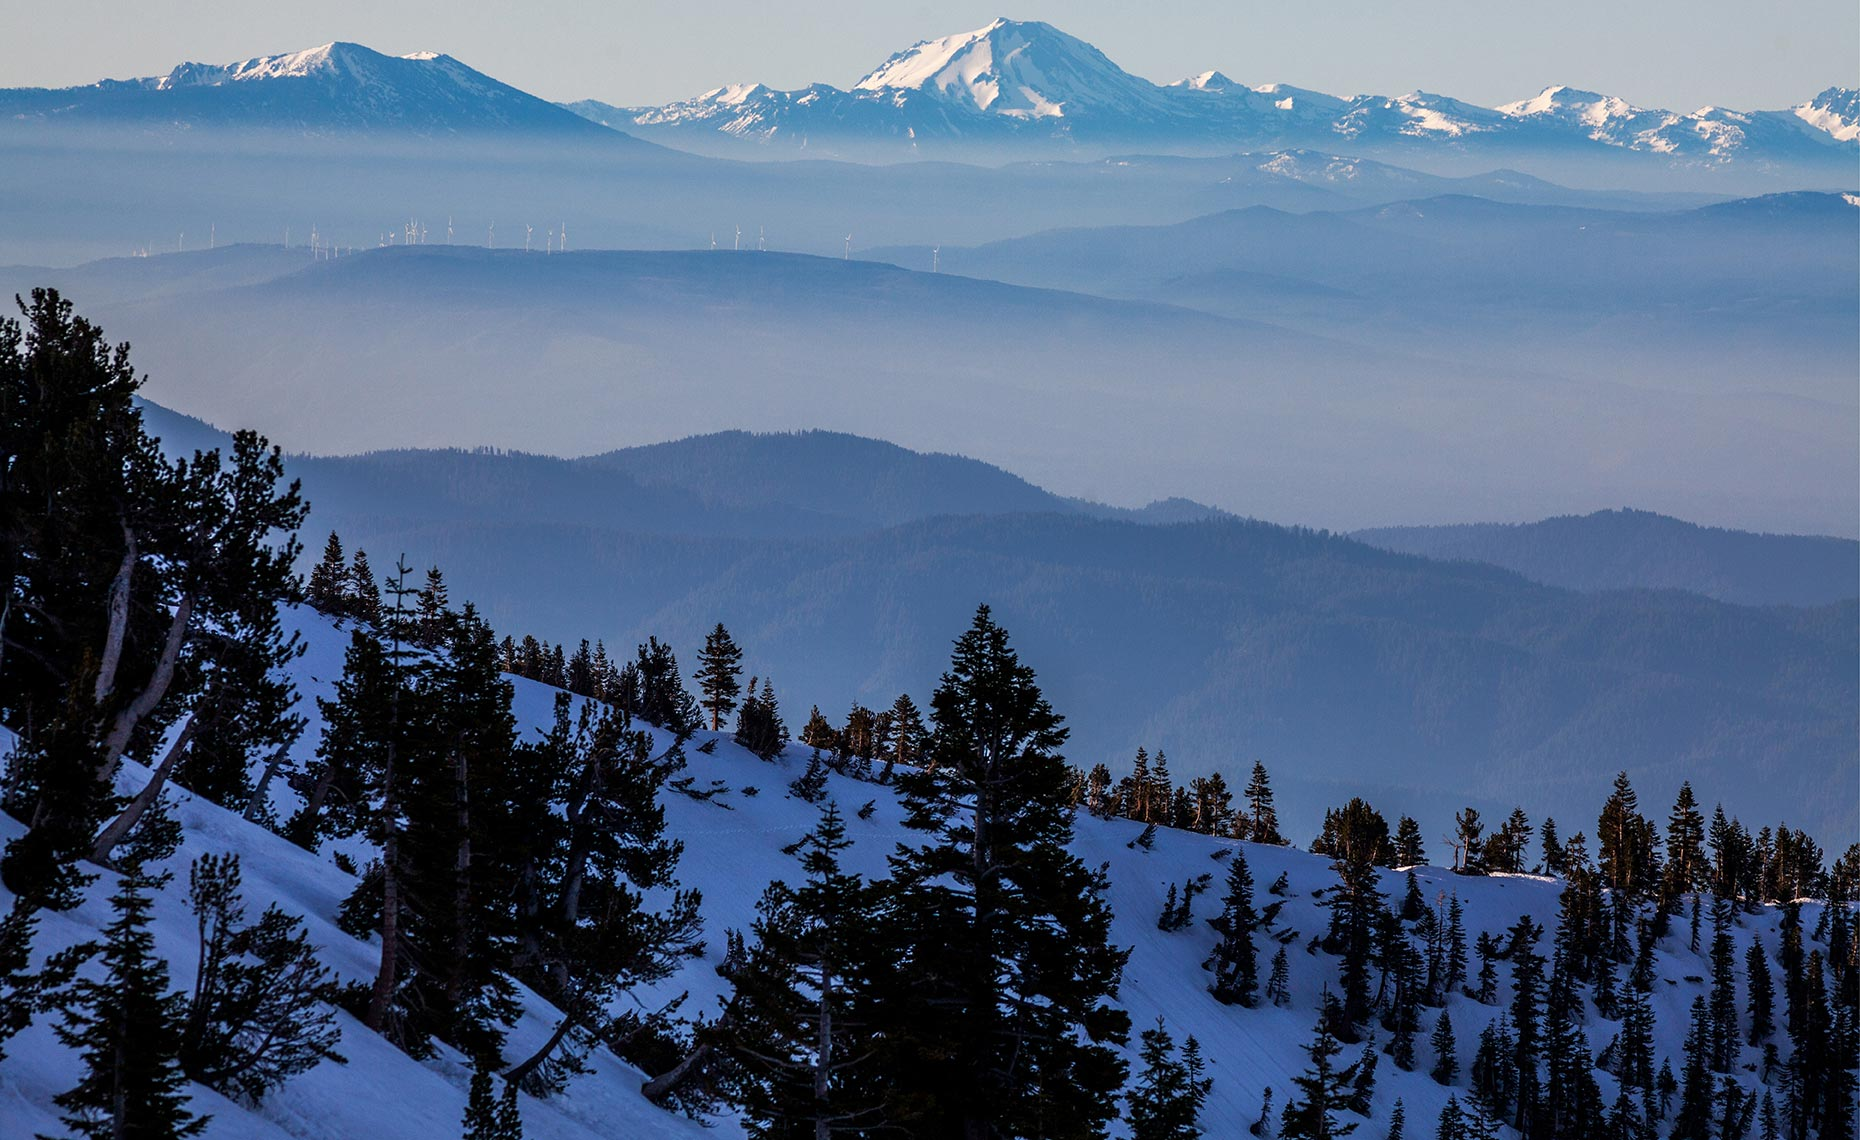 27_Mt_Shasta_California_Environment_Landscape_Chris_Wellhausen_Photography.JPG